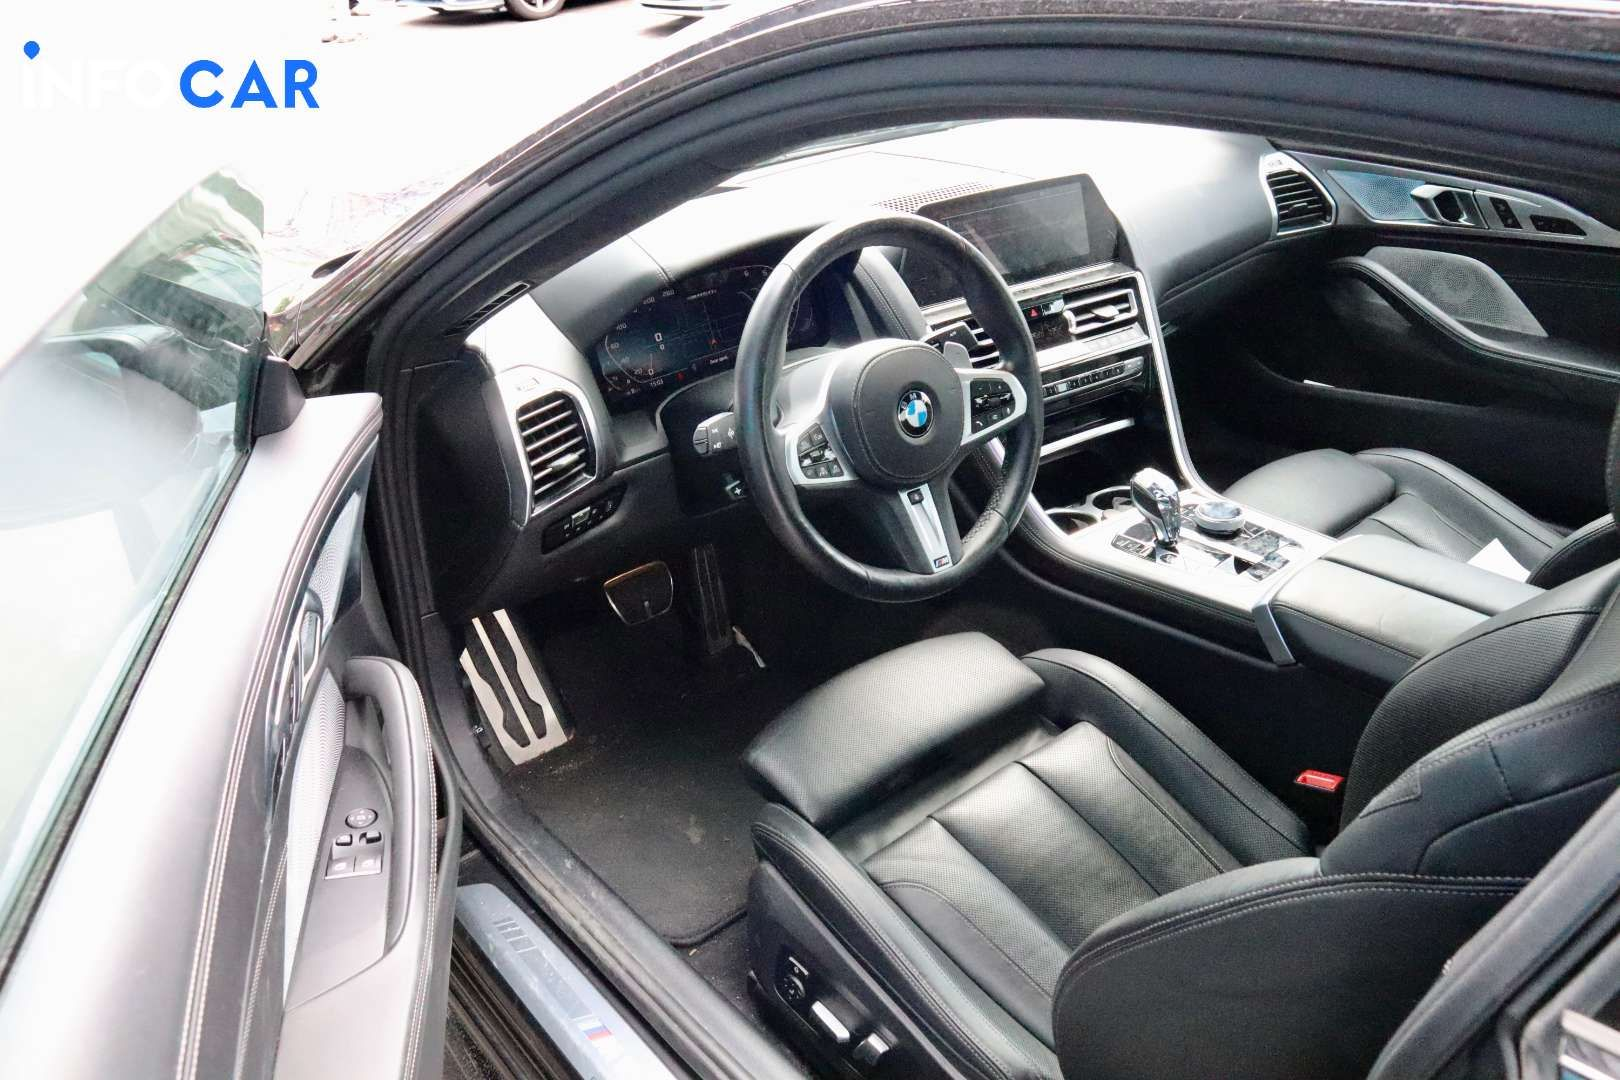 2019 BMW 8-Series 850i xDrive Coupe - INFOCAR - Toronto's Most Comprehensive New and Used Auto Trading Platform